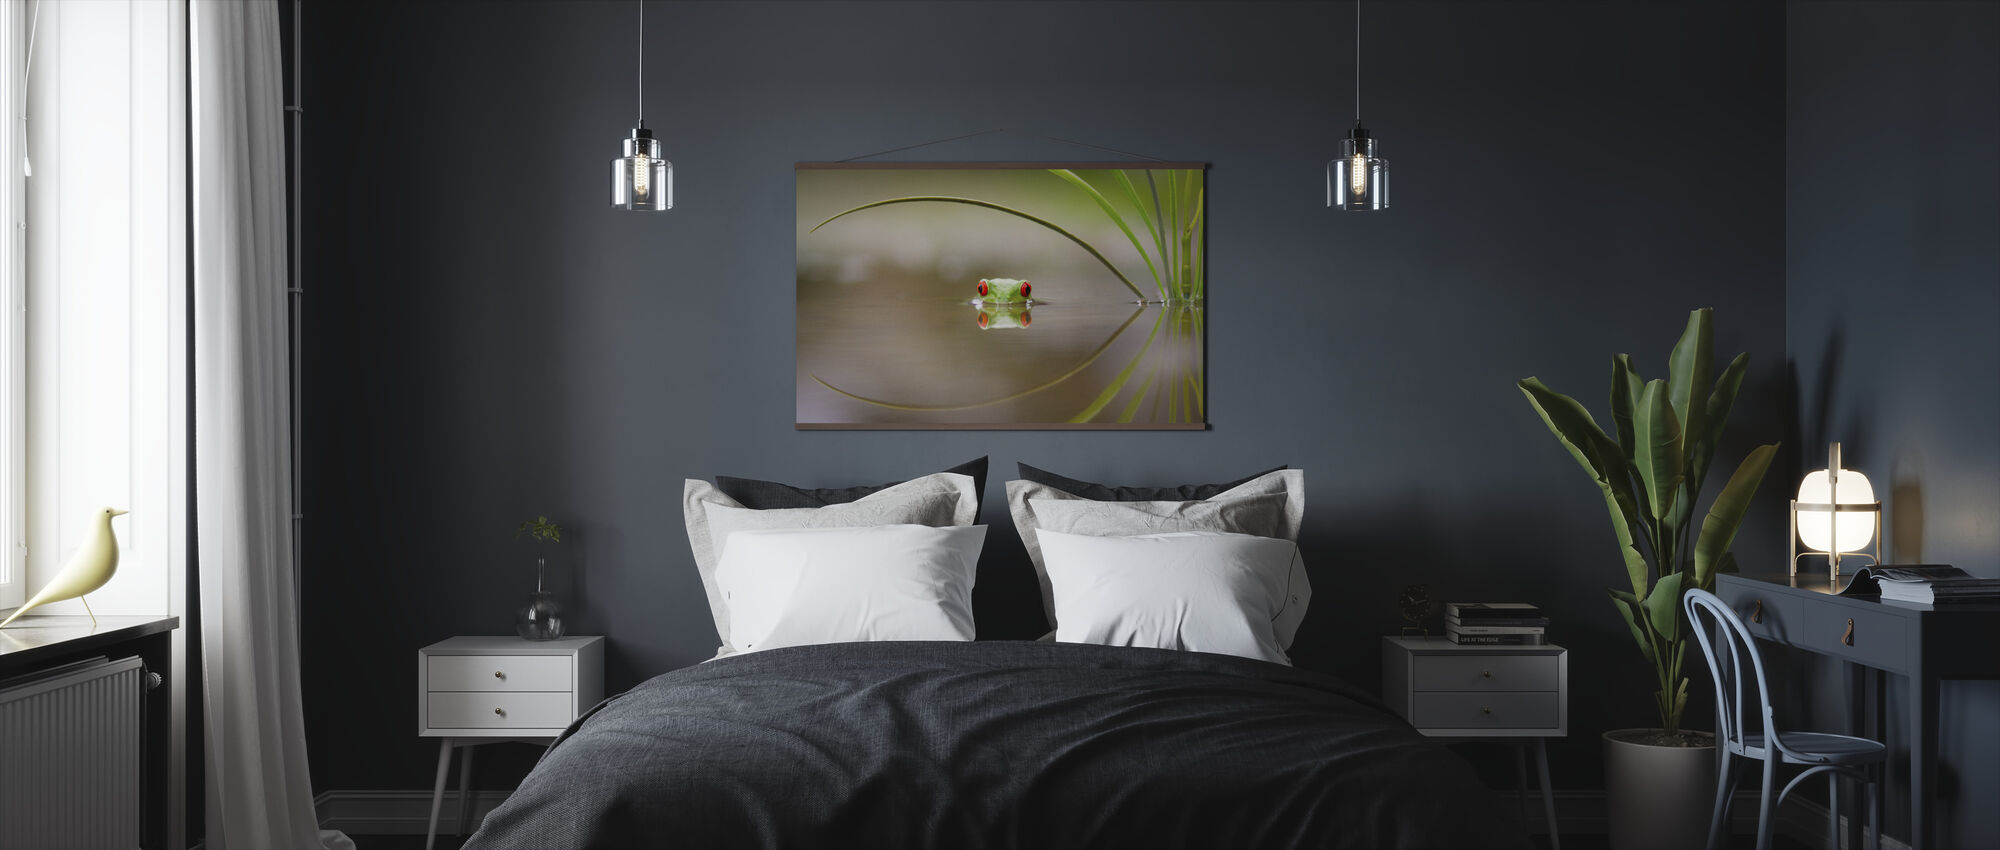 Beauty of Reflection - Poster - Bedroom